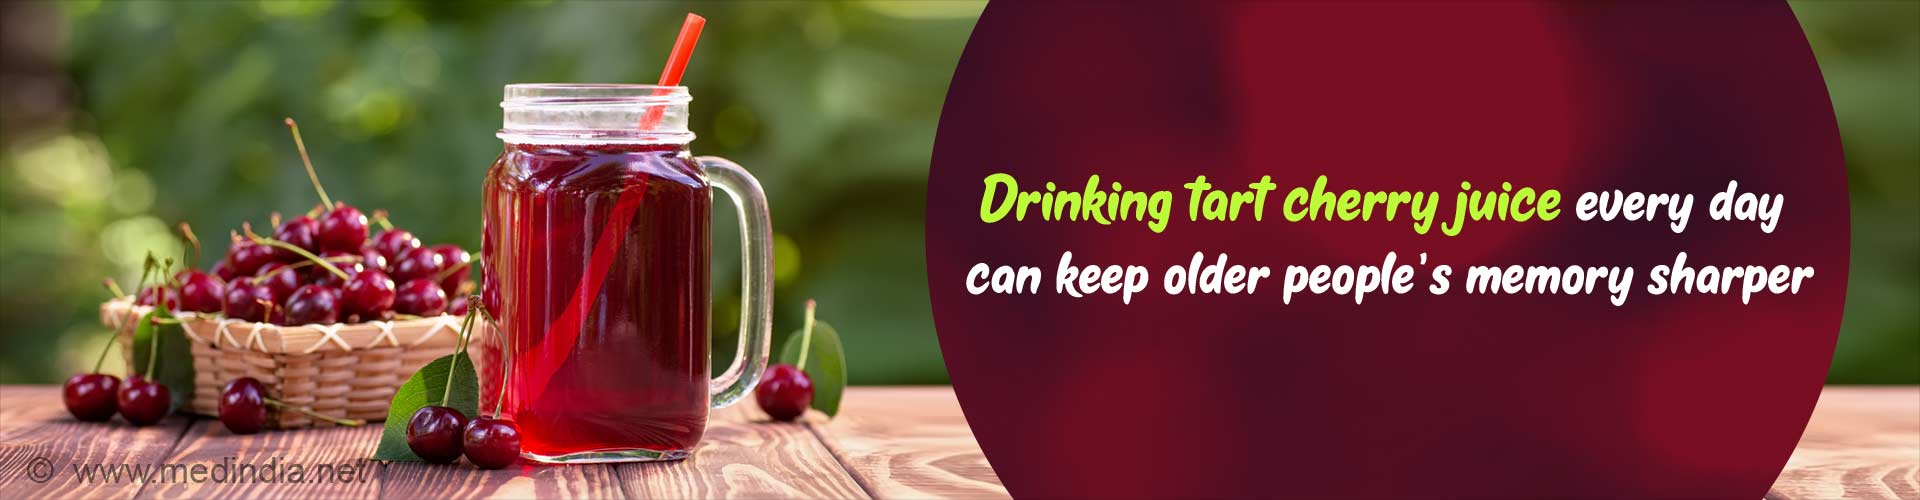 Drinking tart cherry juice every day can keep older people's memory sharper.